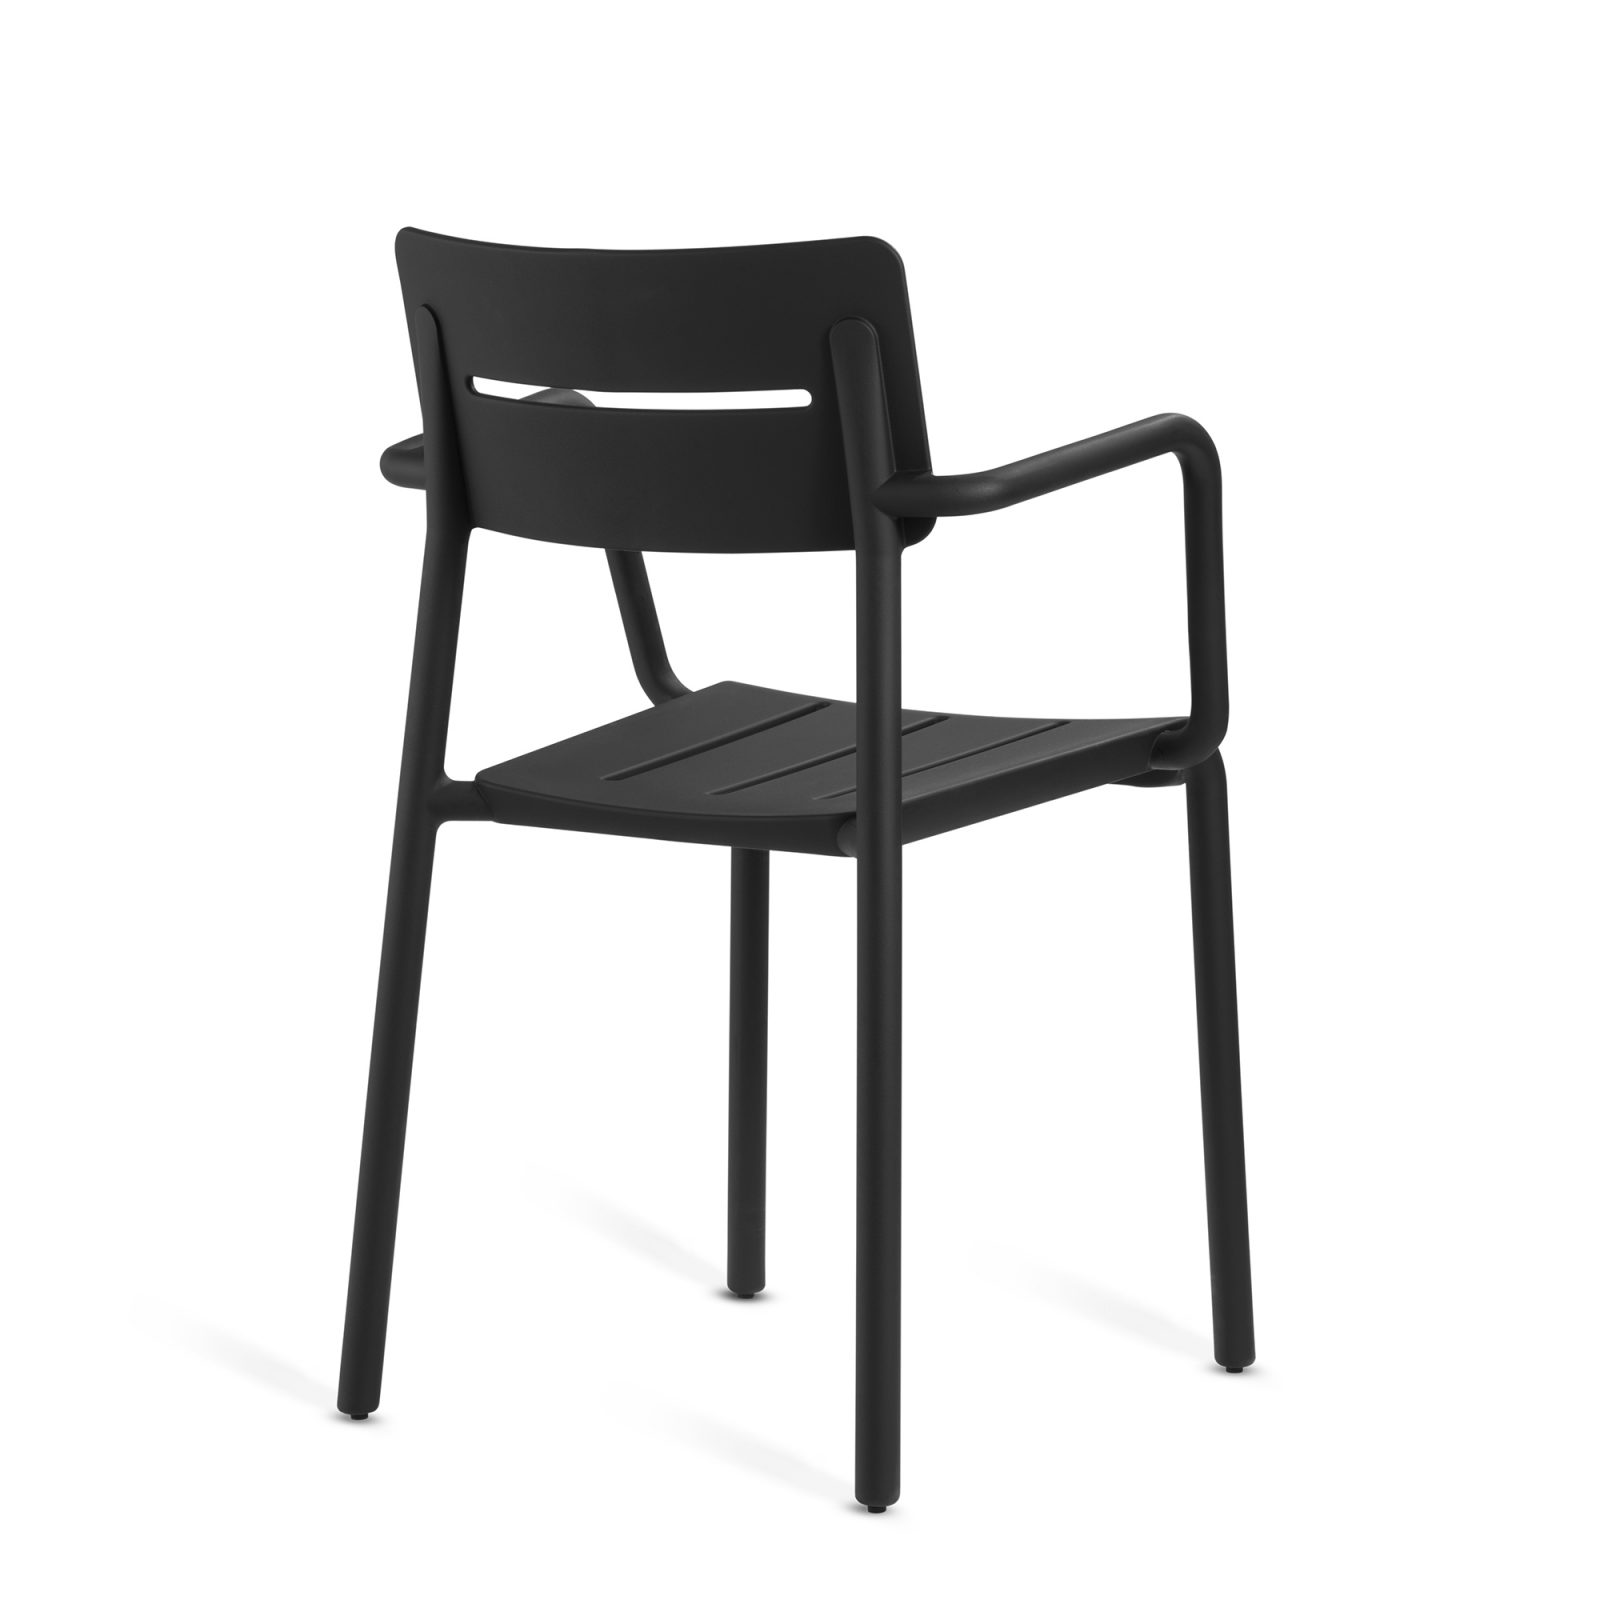 outo-armchair-5